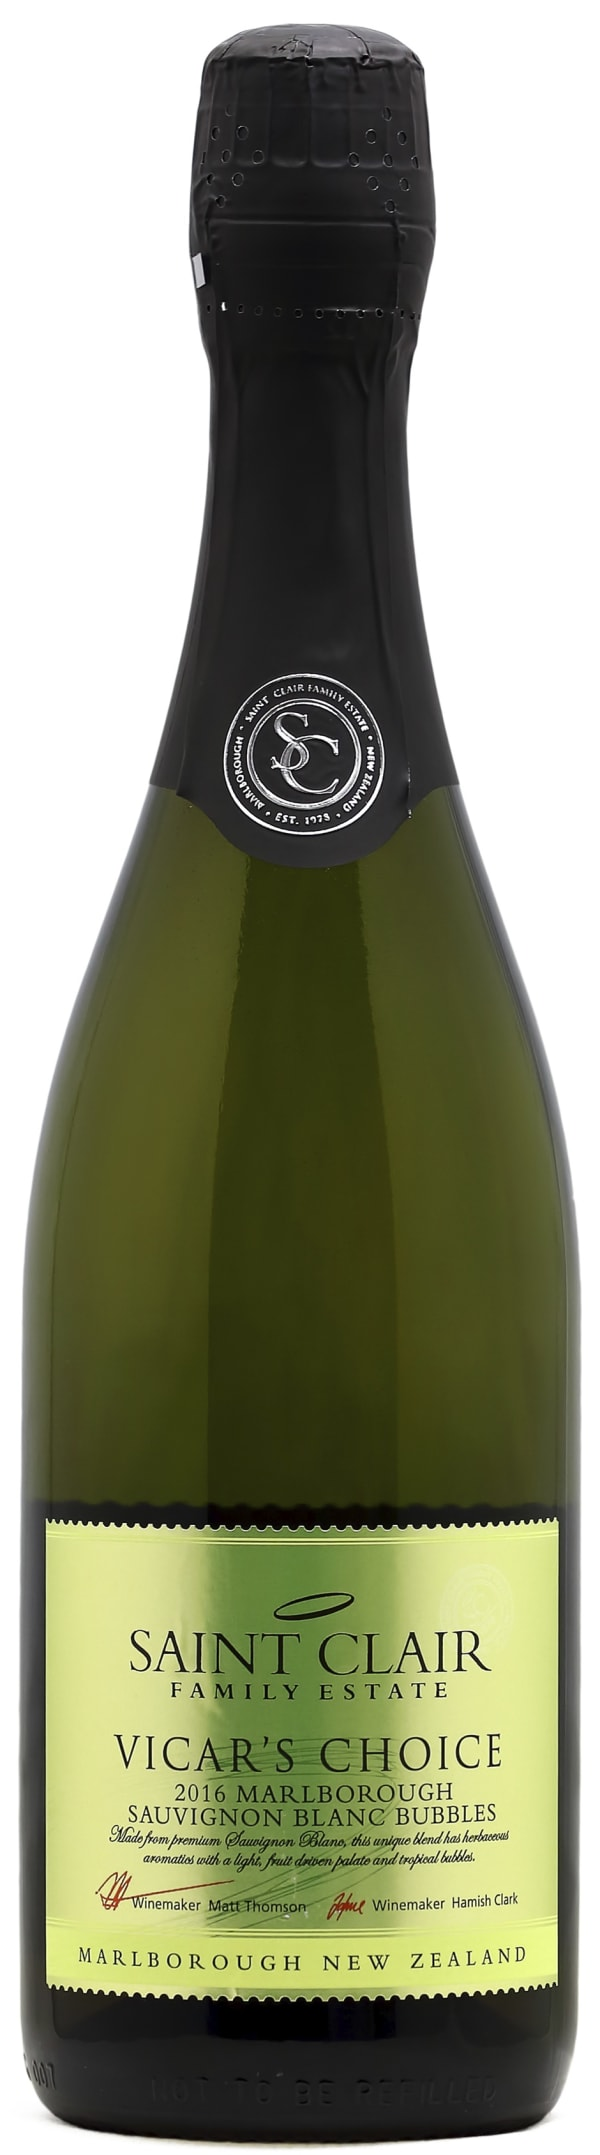 Saint Clair Vicar's Choice Sauvignon Blanc Bubbles Brut 2015